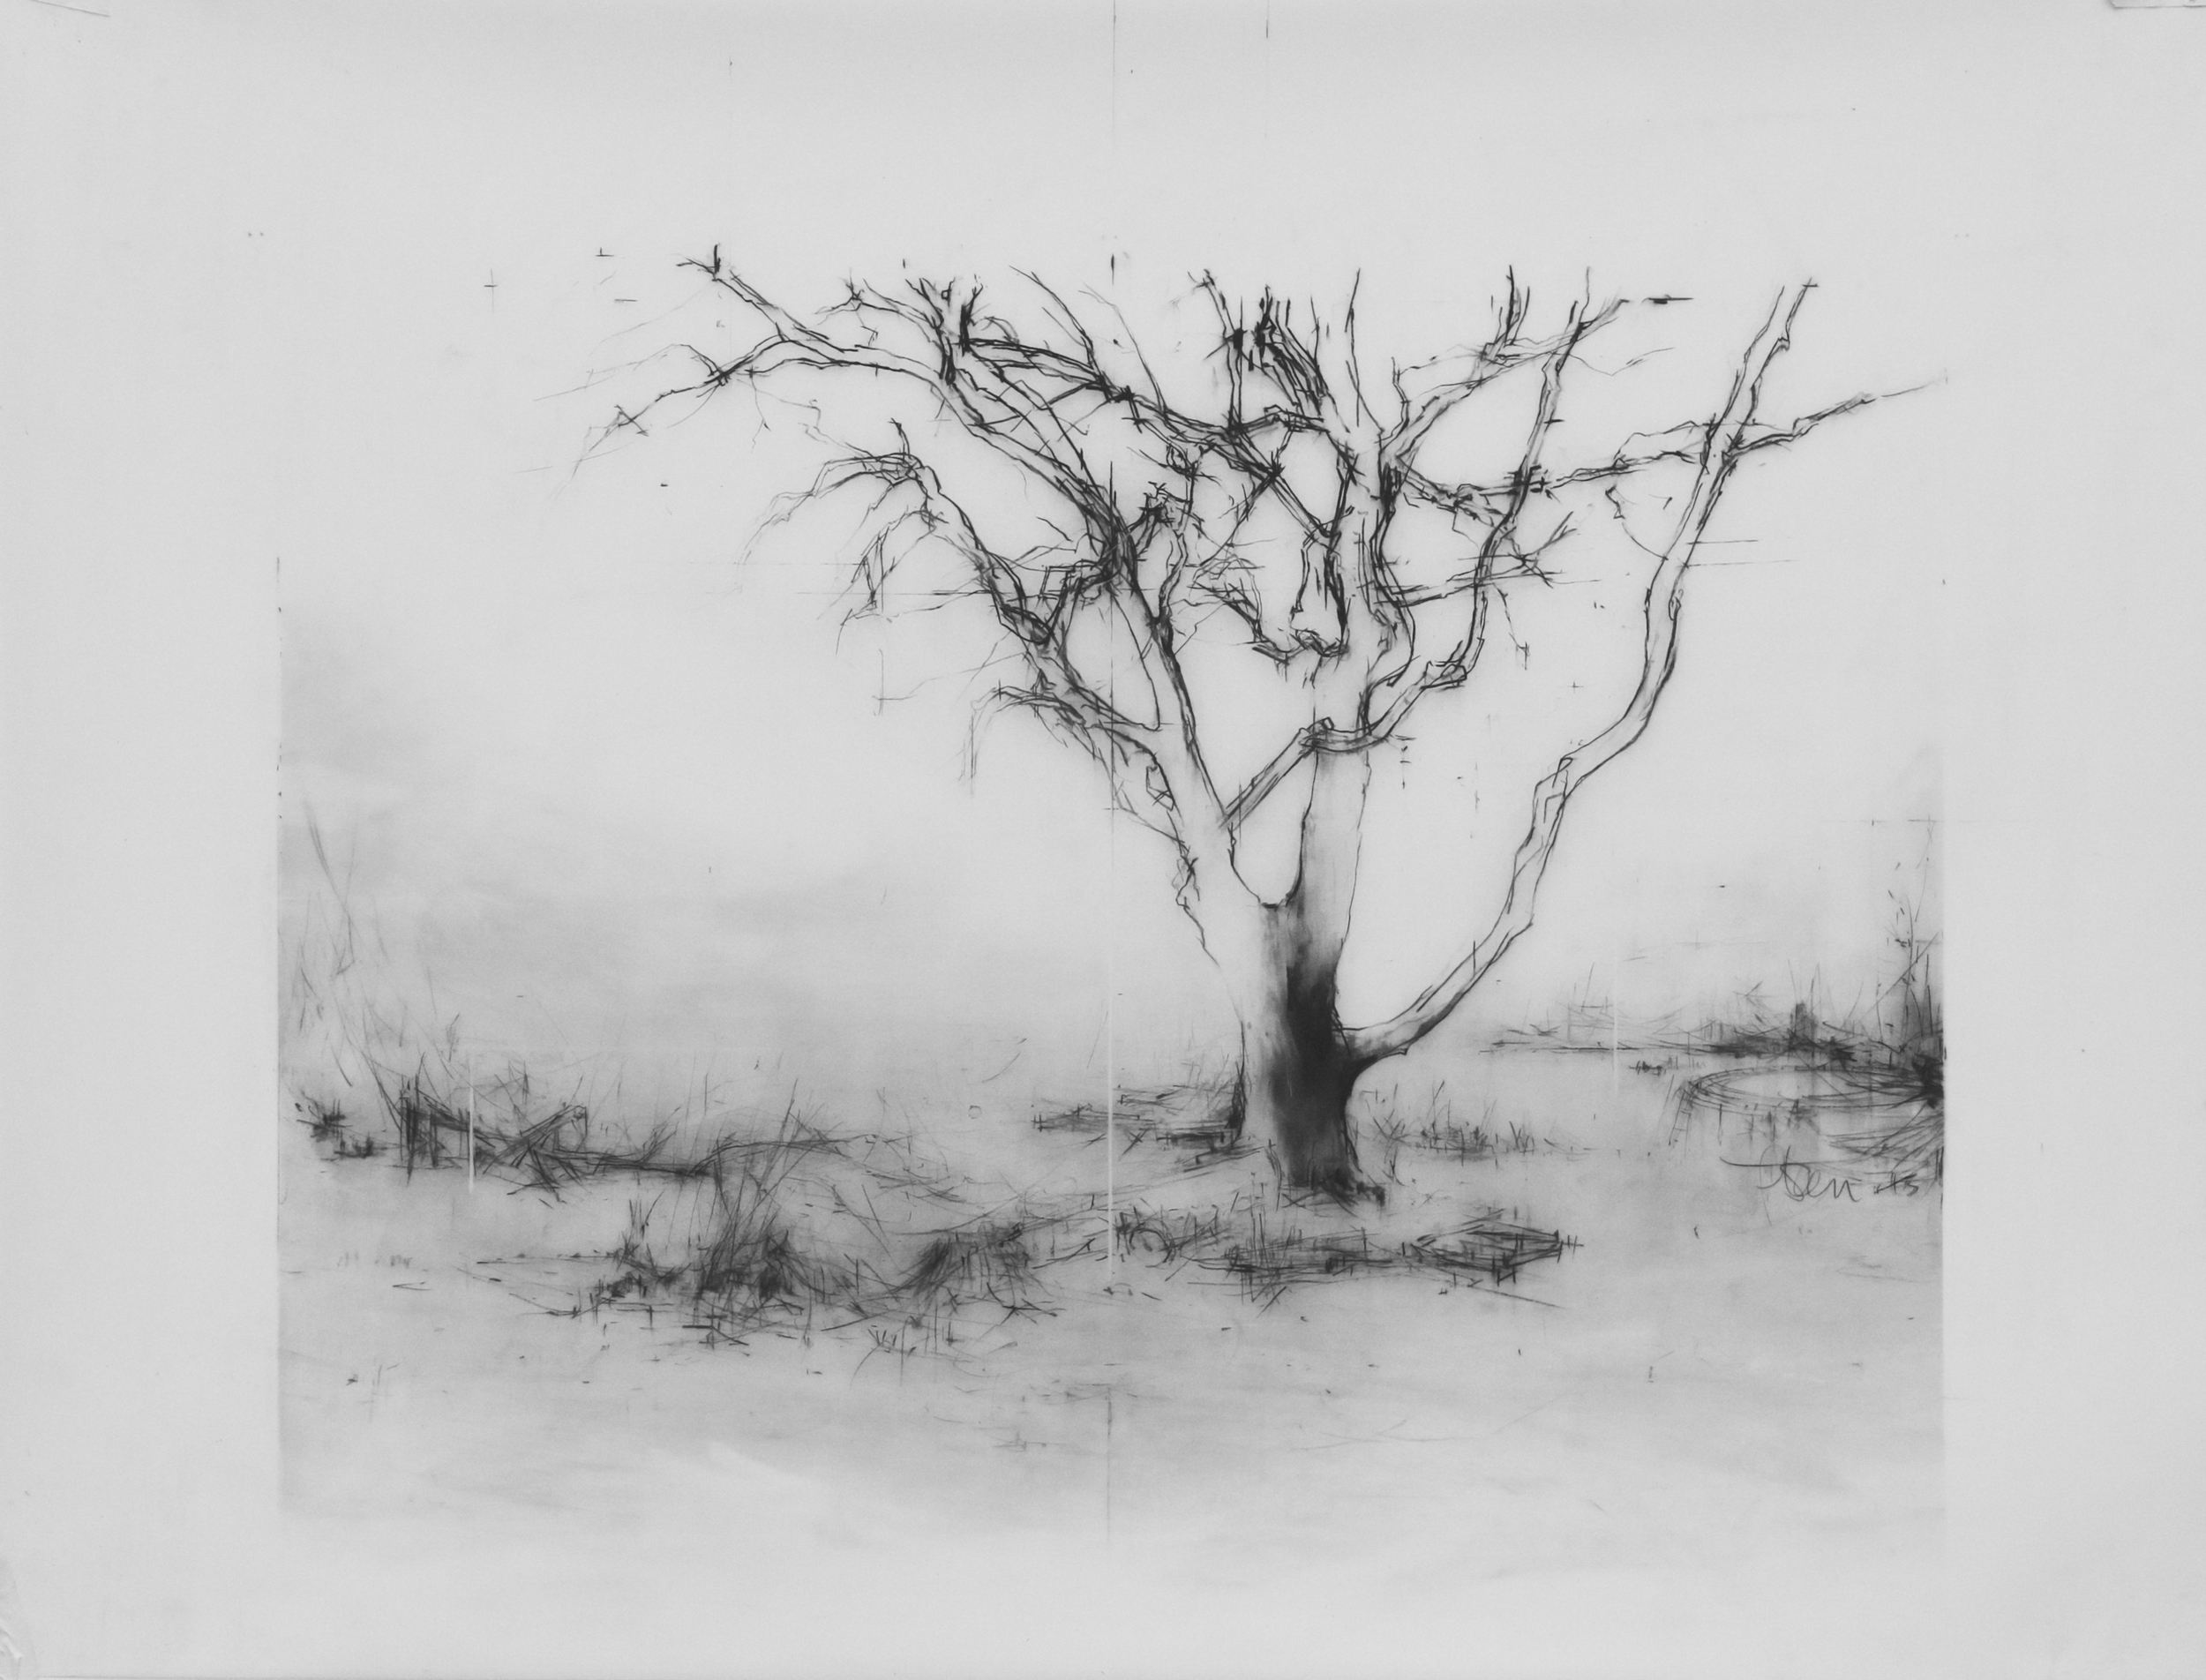 Laurie Steen RWA  As I remember it - drawing 15-14  46 x 59 cm   conte on mylar   £1300